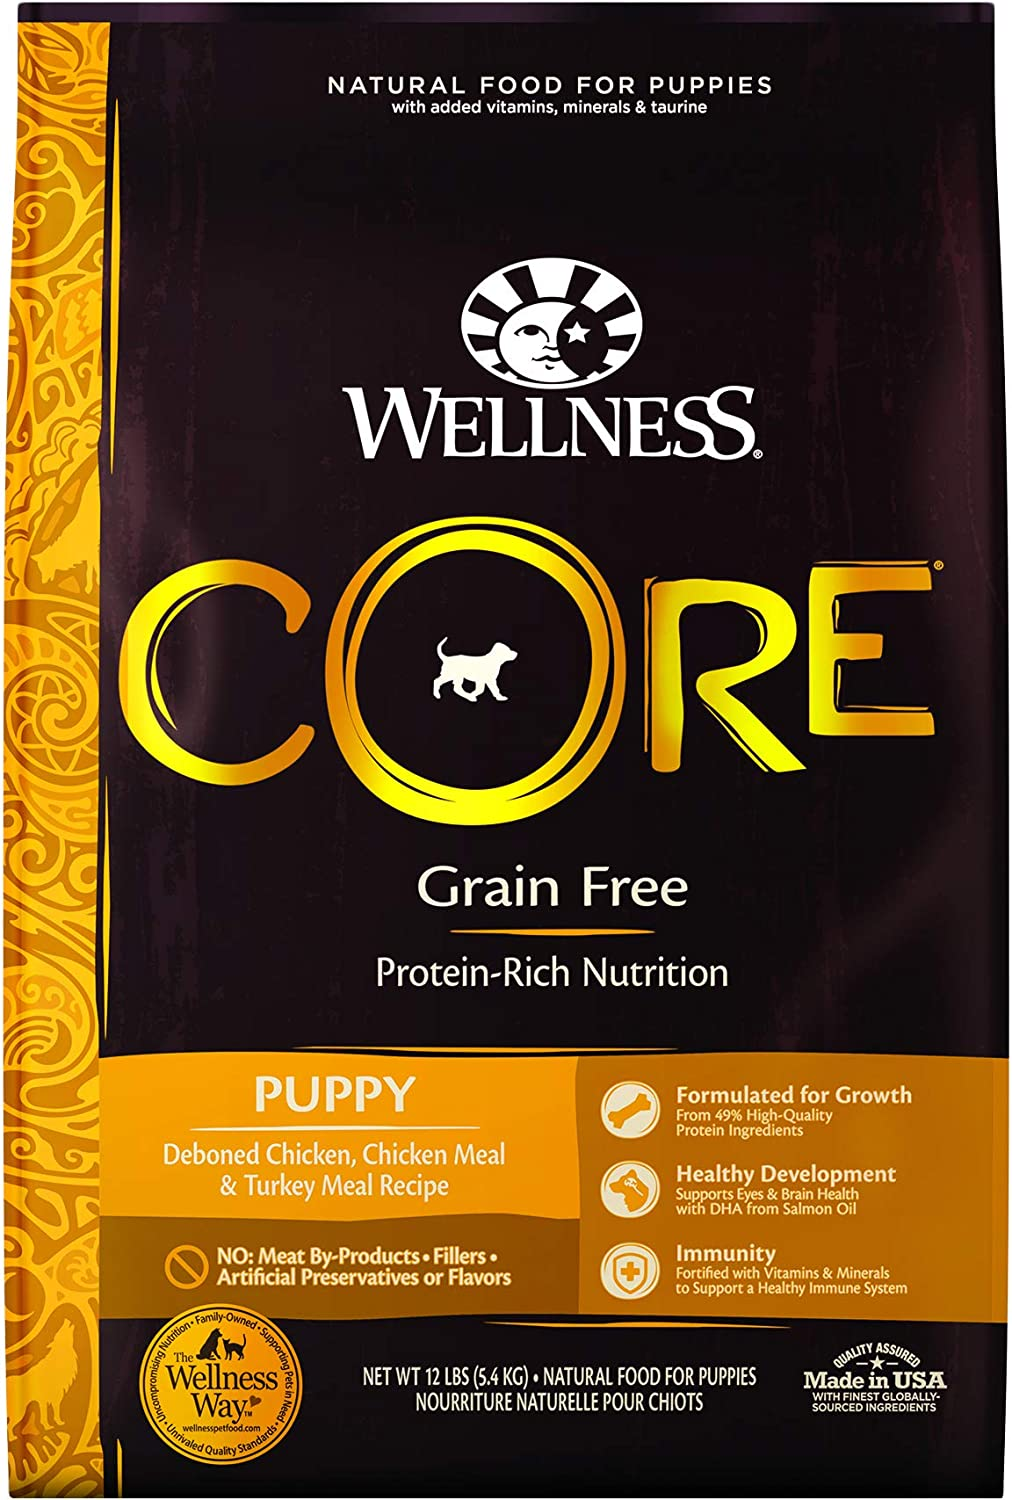 Wellness CORE Natural Dry Grain Free Puppy Food, Chicken & Turkey, 26-Pound Bag